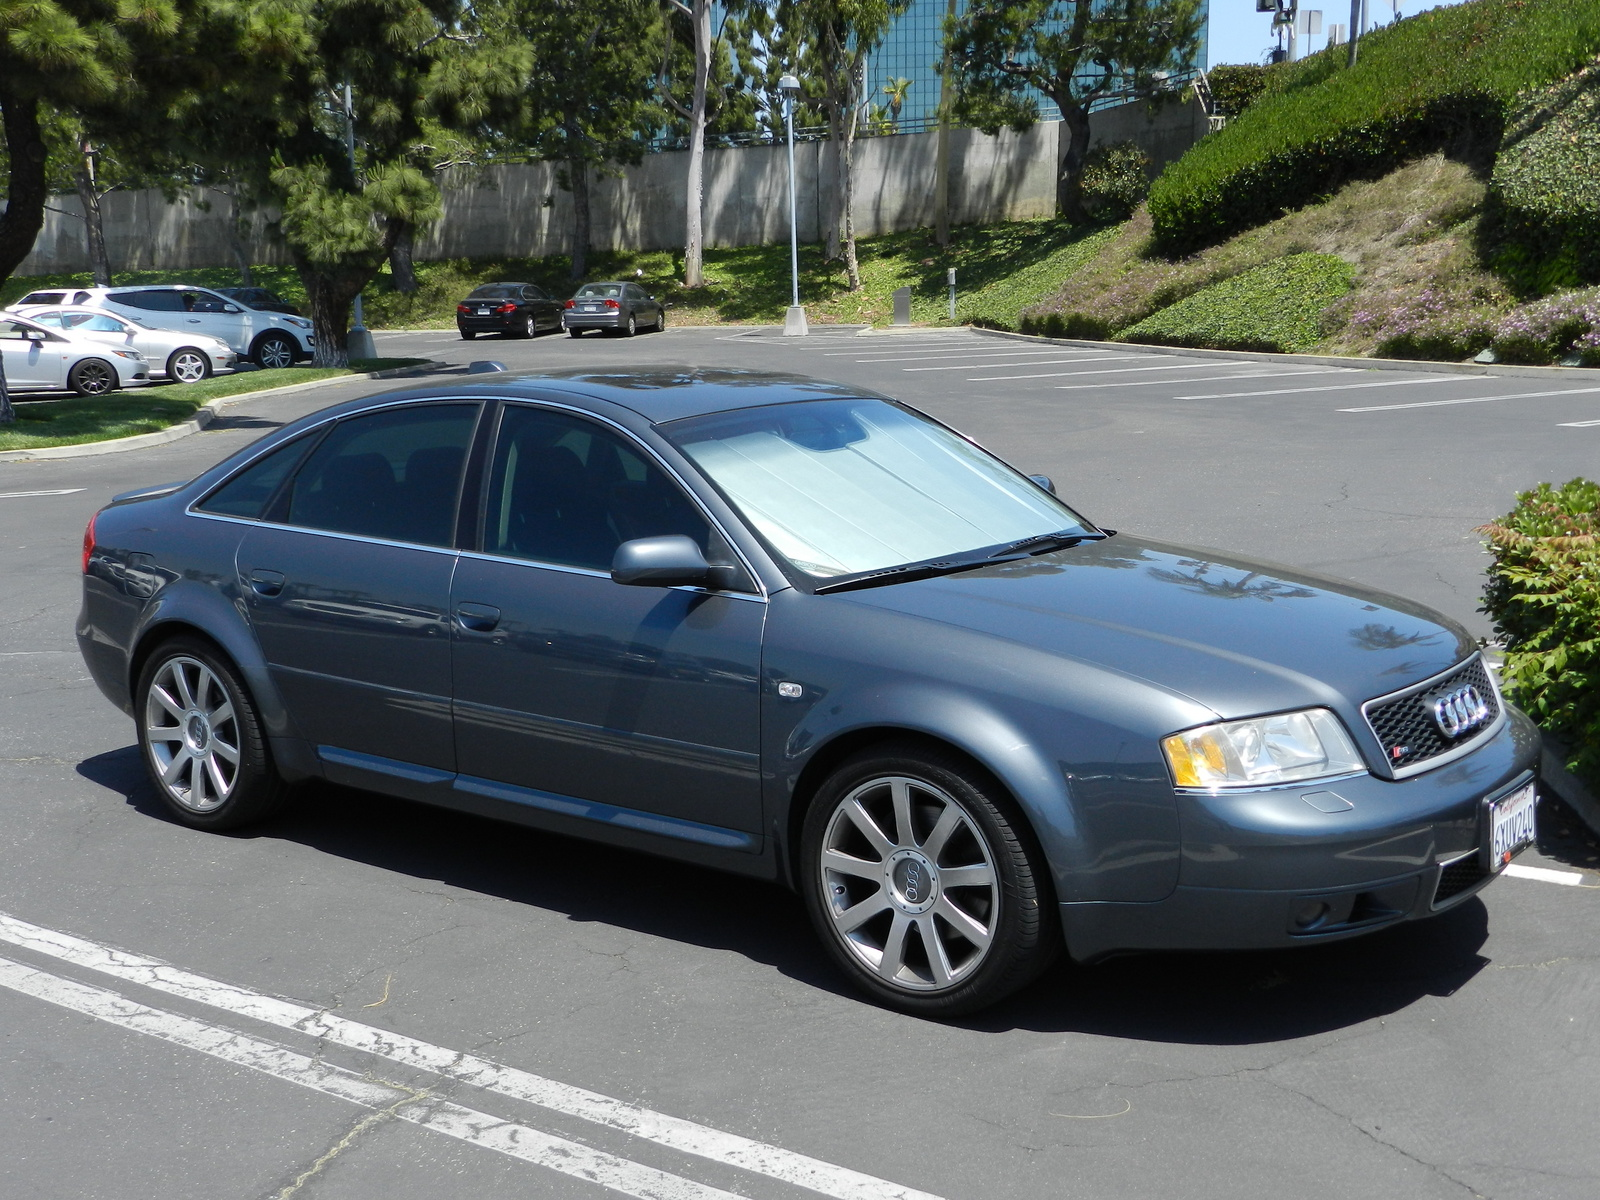 Audi A Pic on Audi A6 C5 All Road